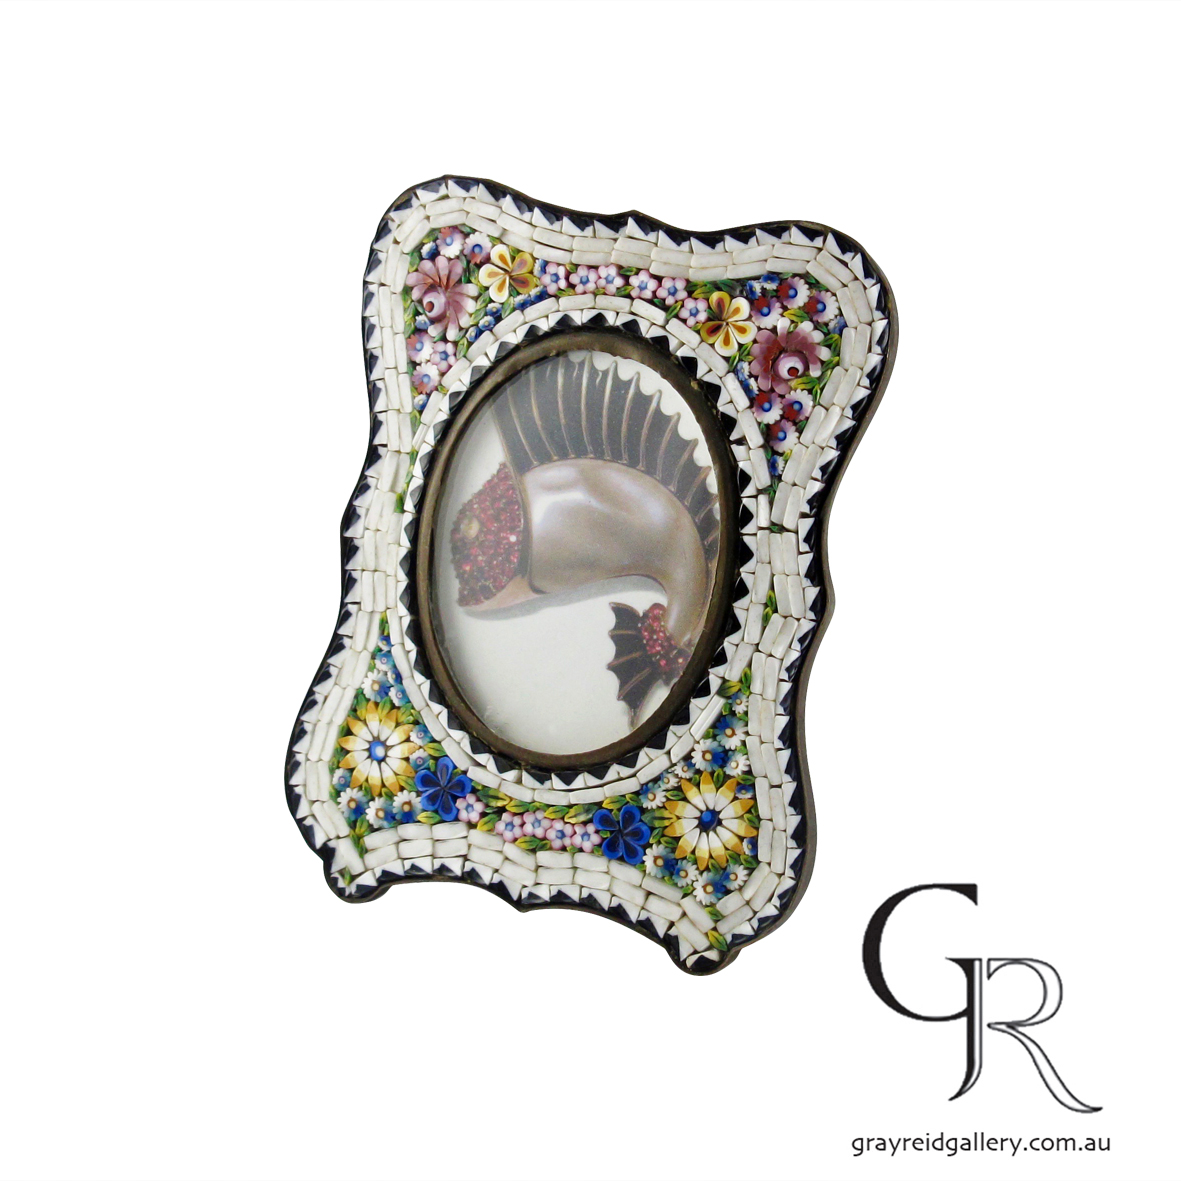 antiques and collectables melbourne micro mosaic picture frame Gray Reid Gallery 10.jpg